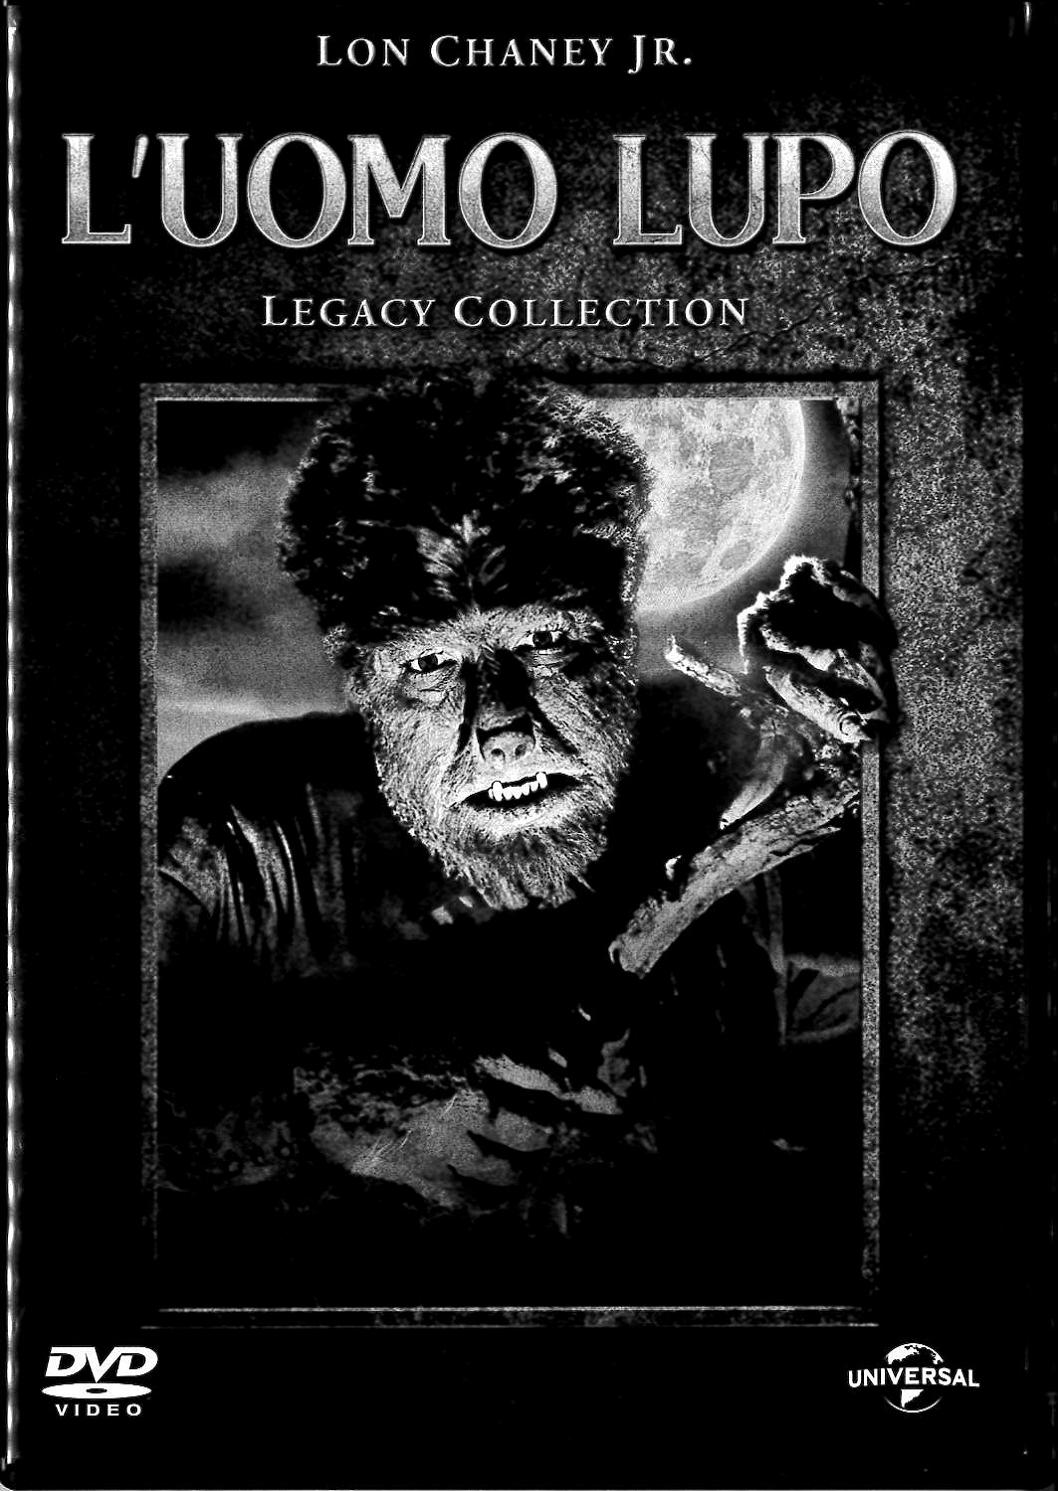 L'UOMO LUPO - LEGACY COLLECTION (DVD)